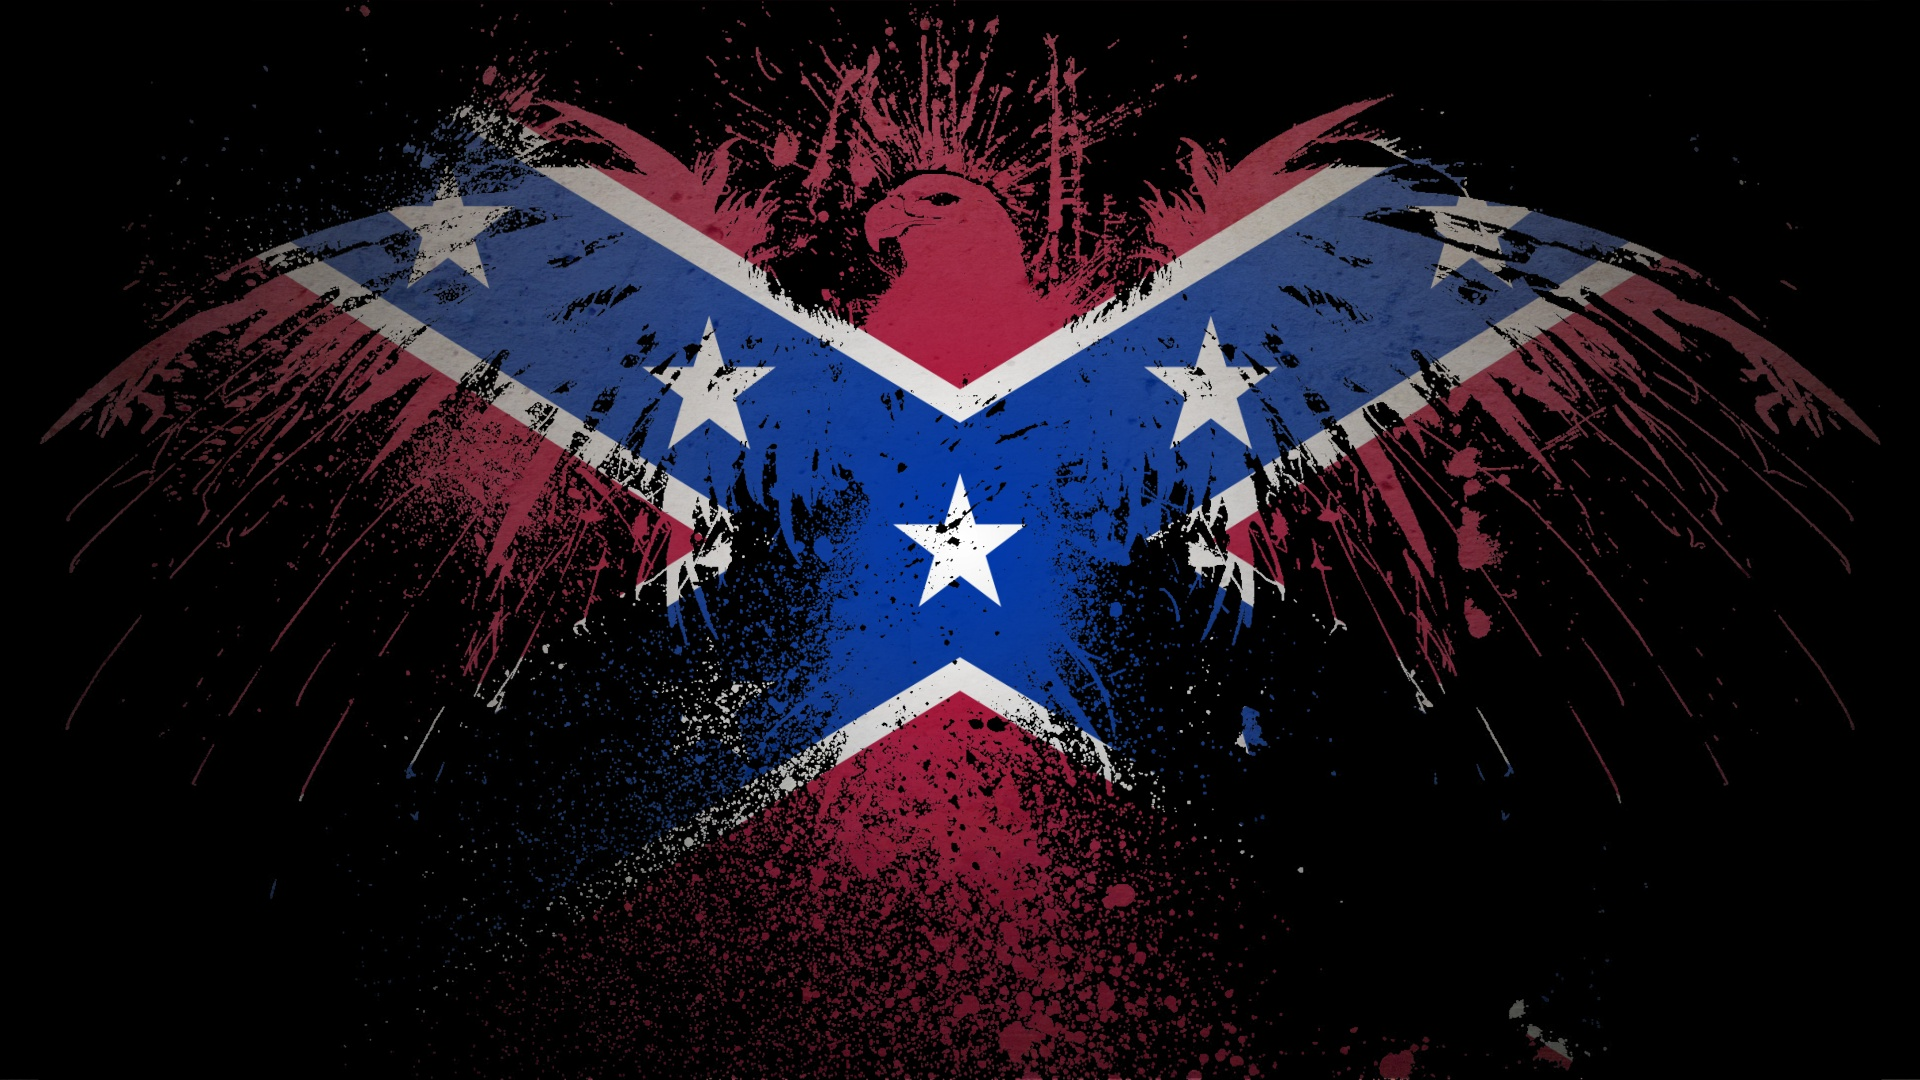 rebel flag live wallpaper 1920x1080